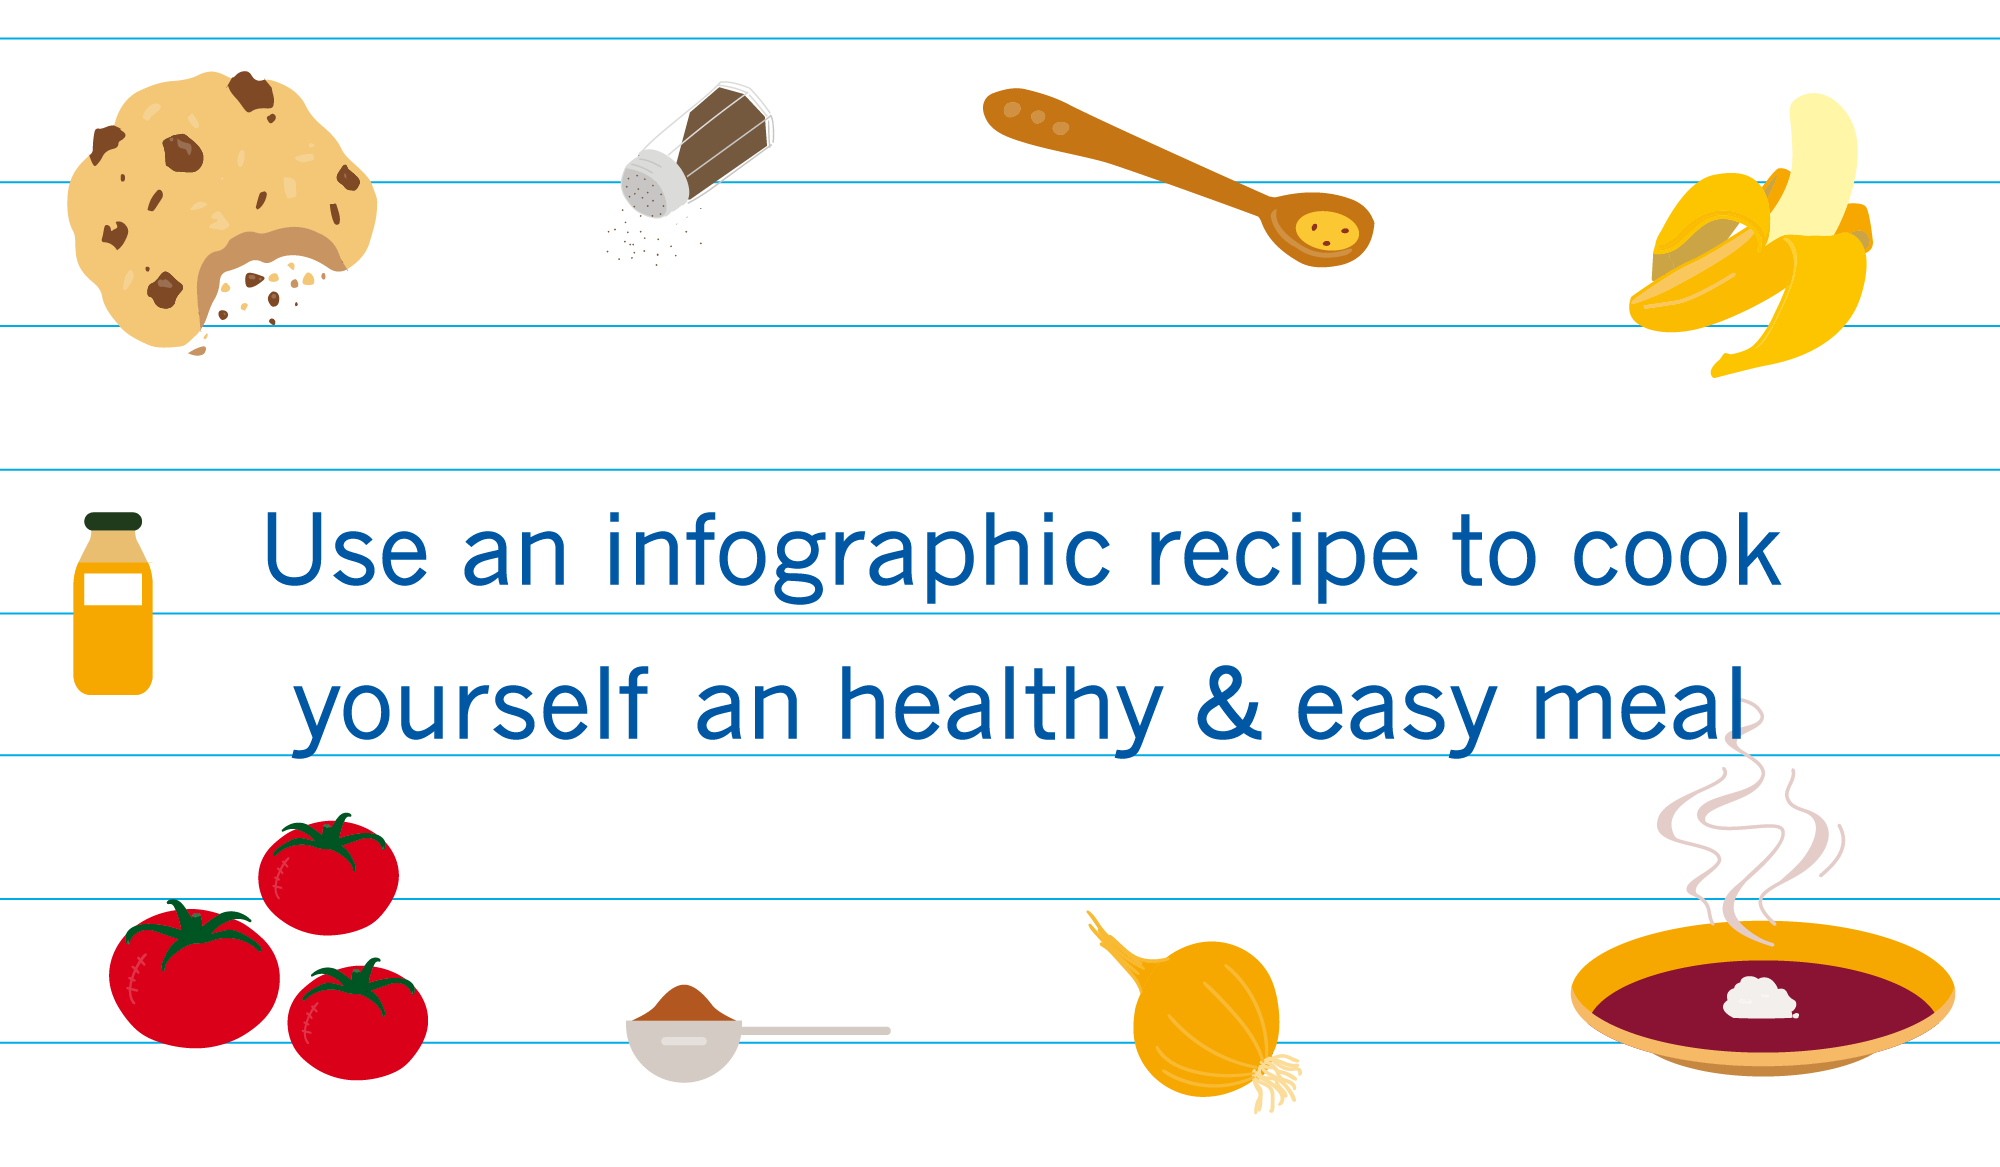 Infographic of healthy recipes